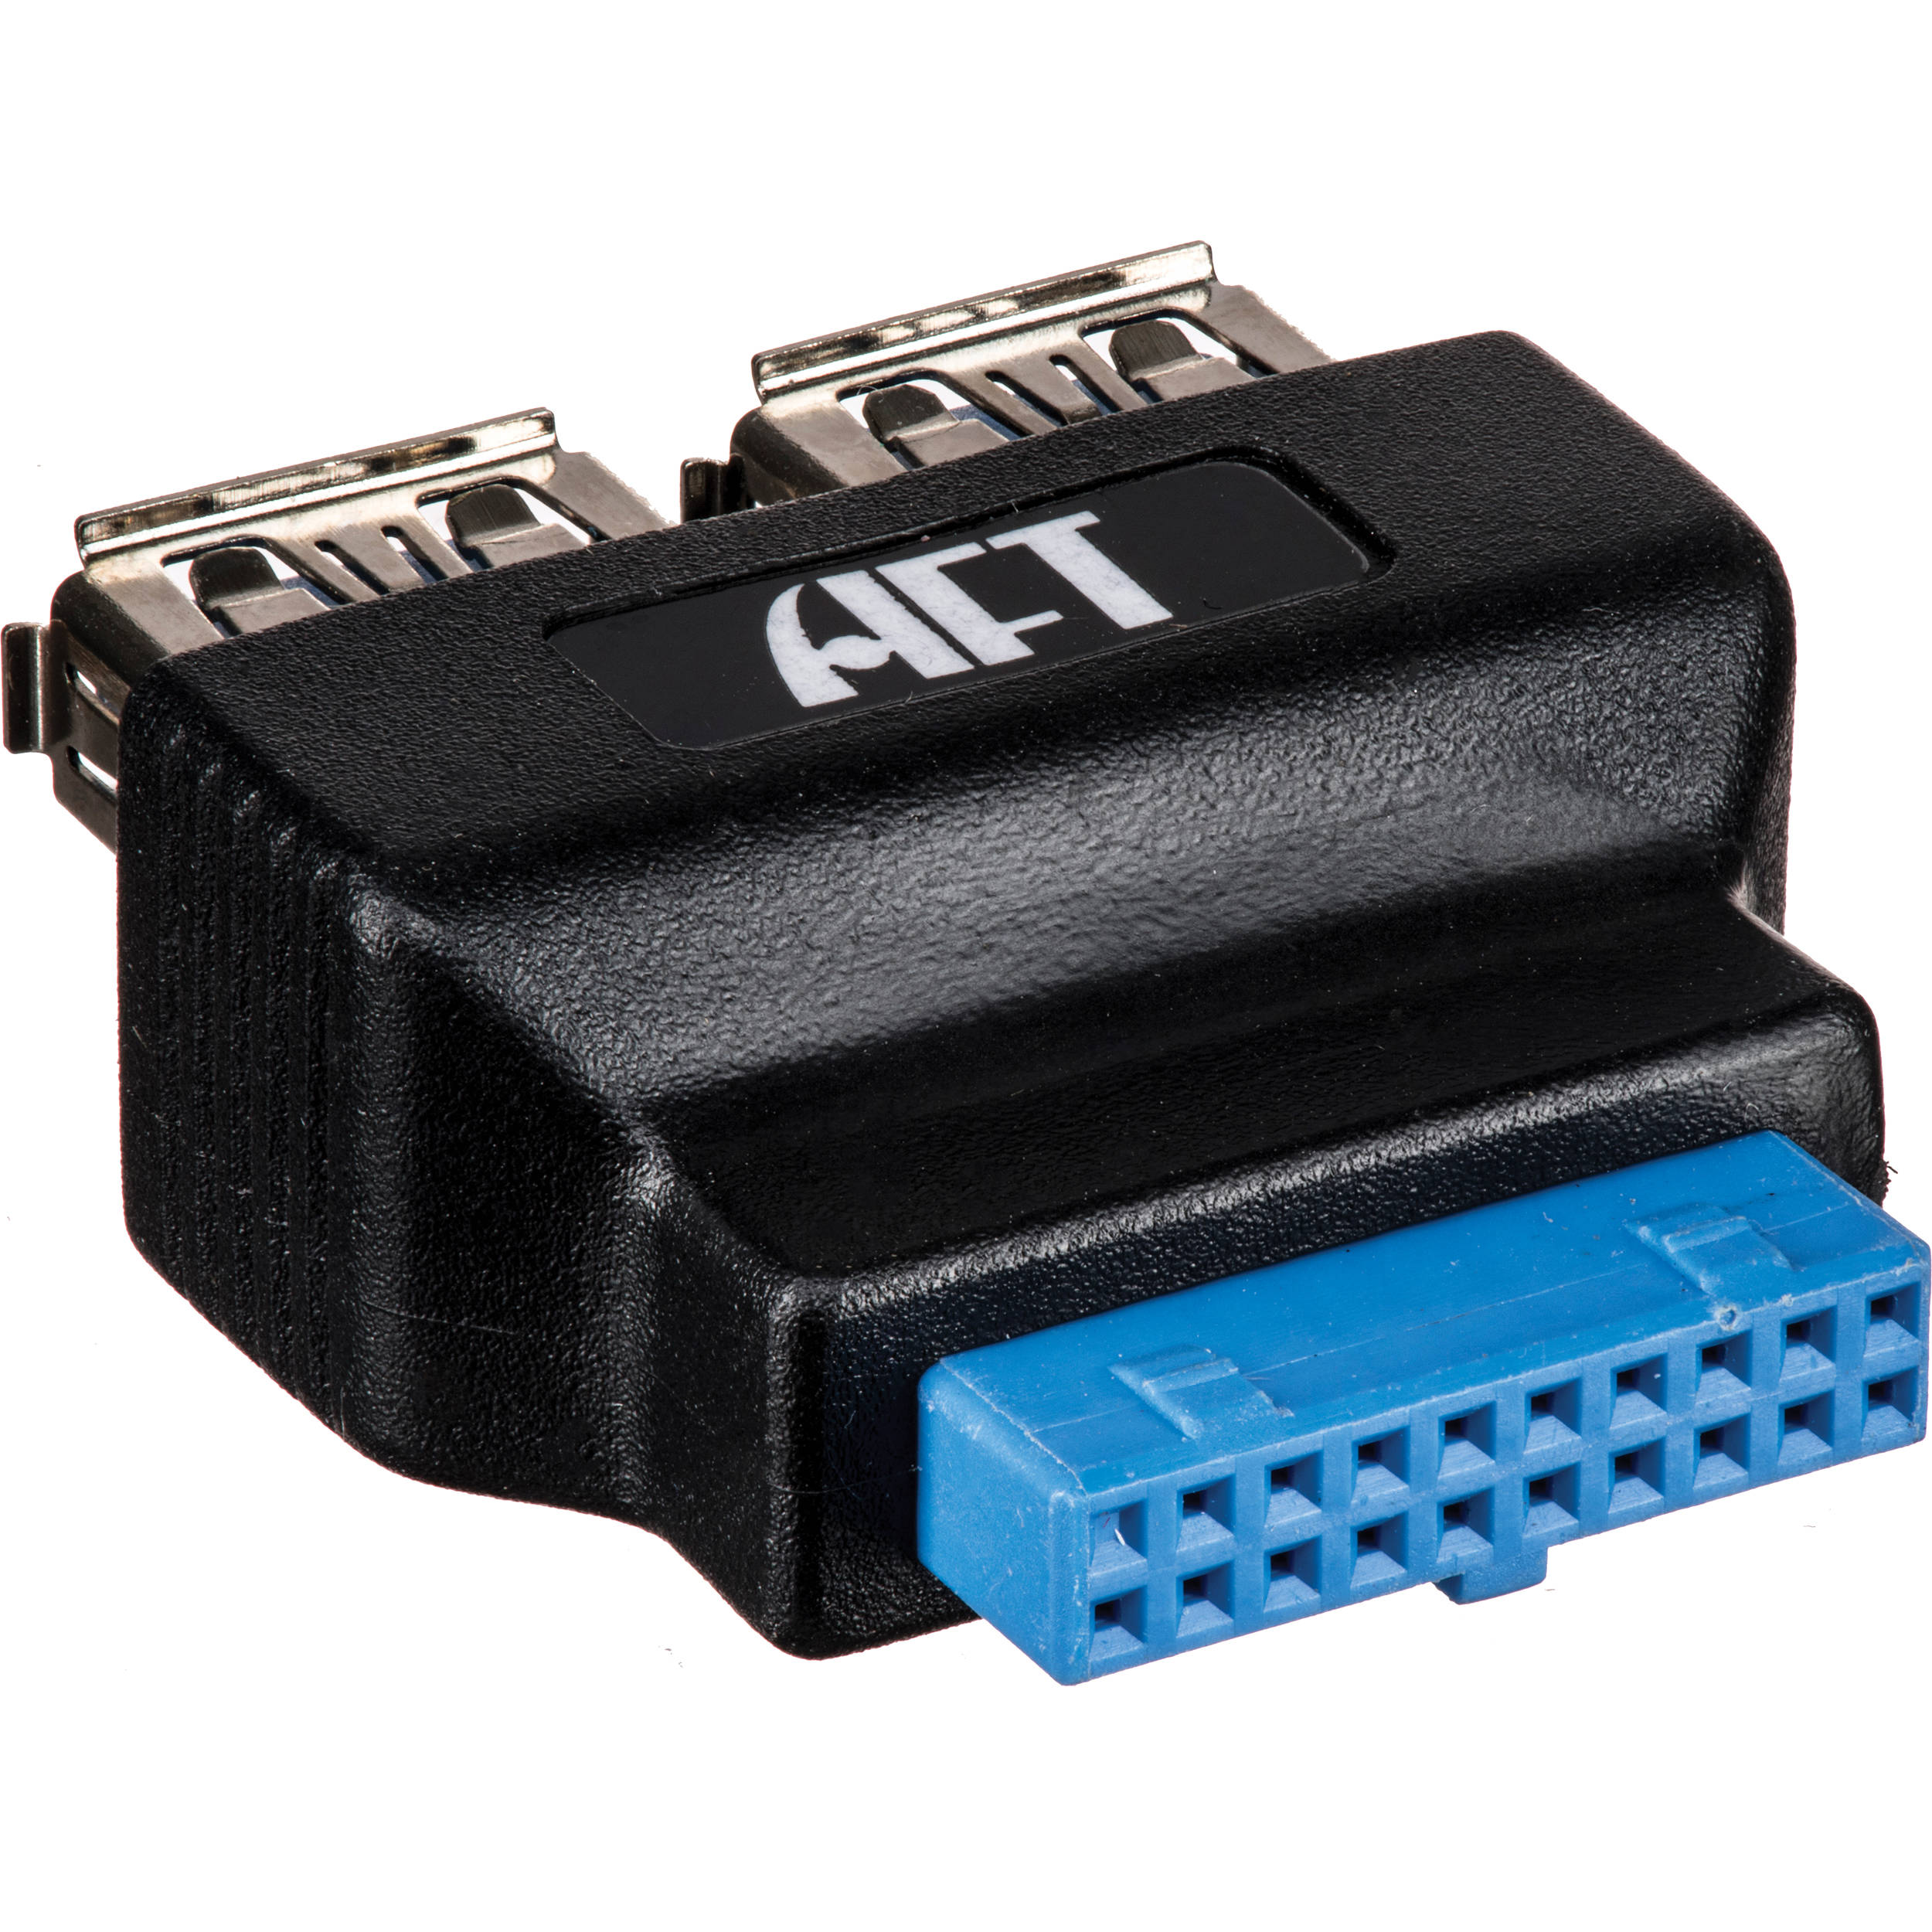 Https C Product 1384777 Reg Australia39s 2 Pin Power Cord Plug Saa Two Wire Atech Flash Technology Ad 0300 R01 Usb 3 0 To 20 1384721